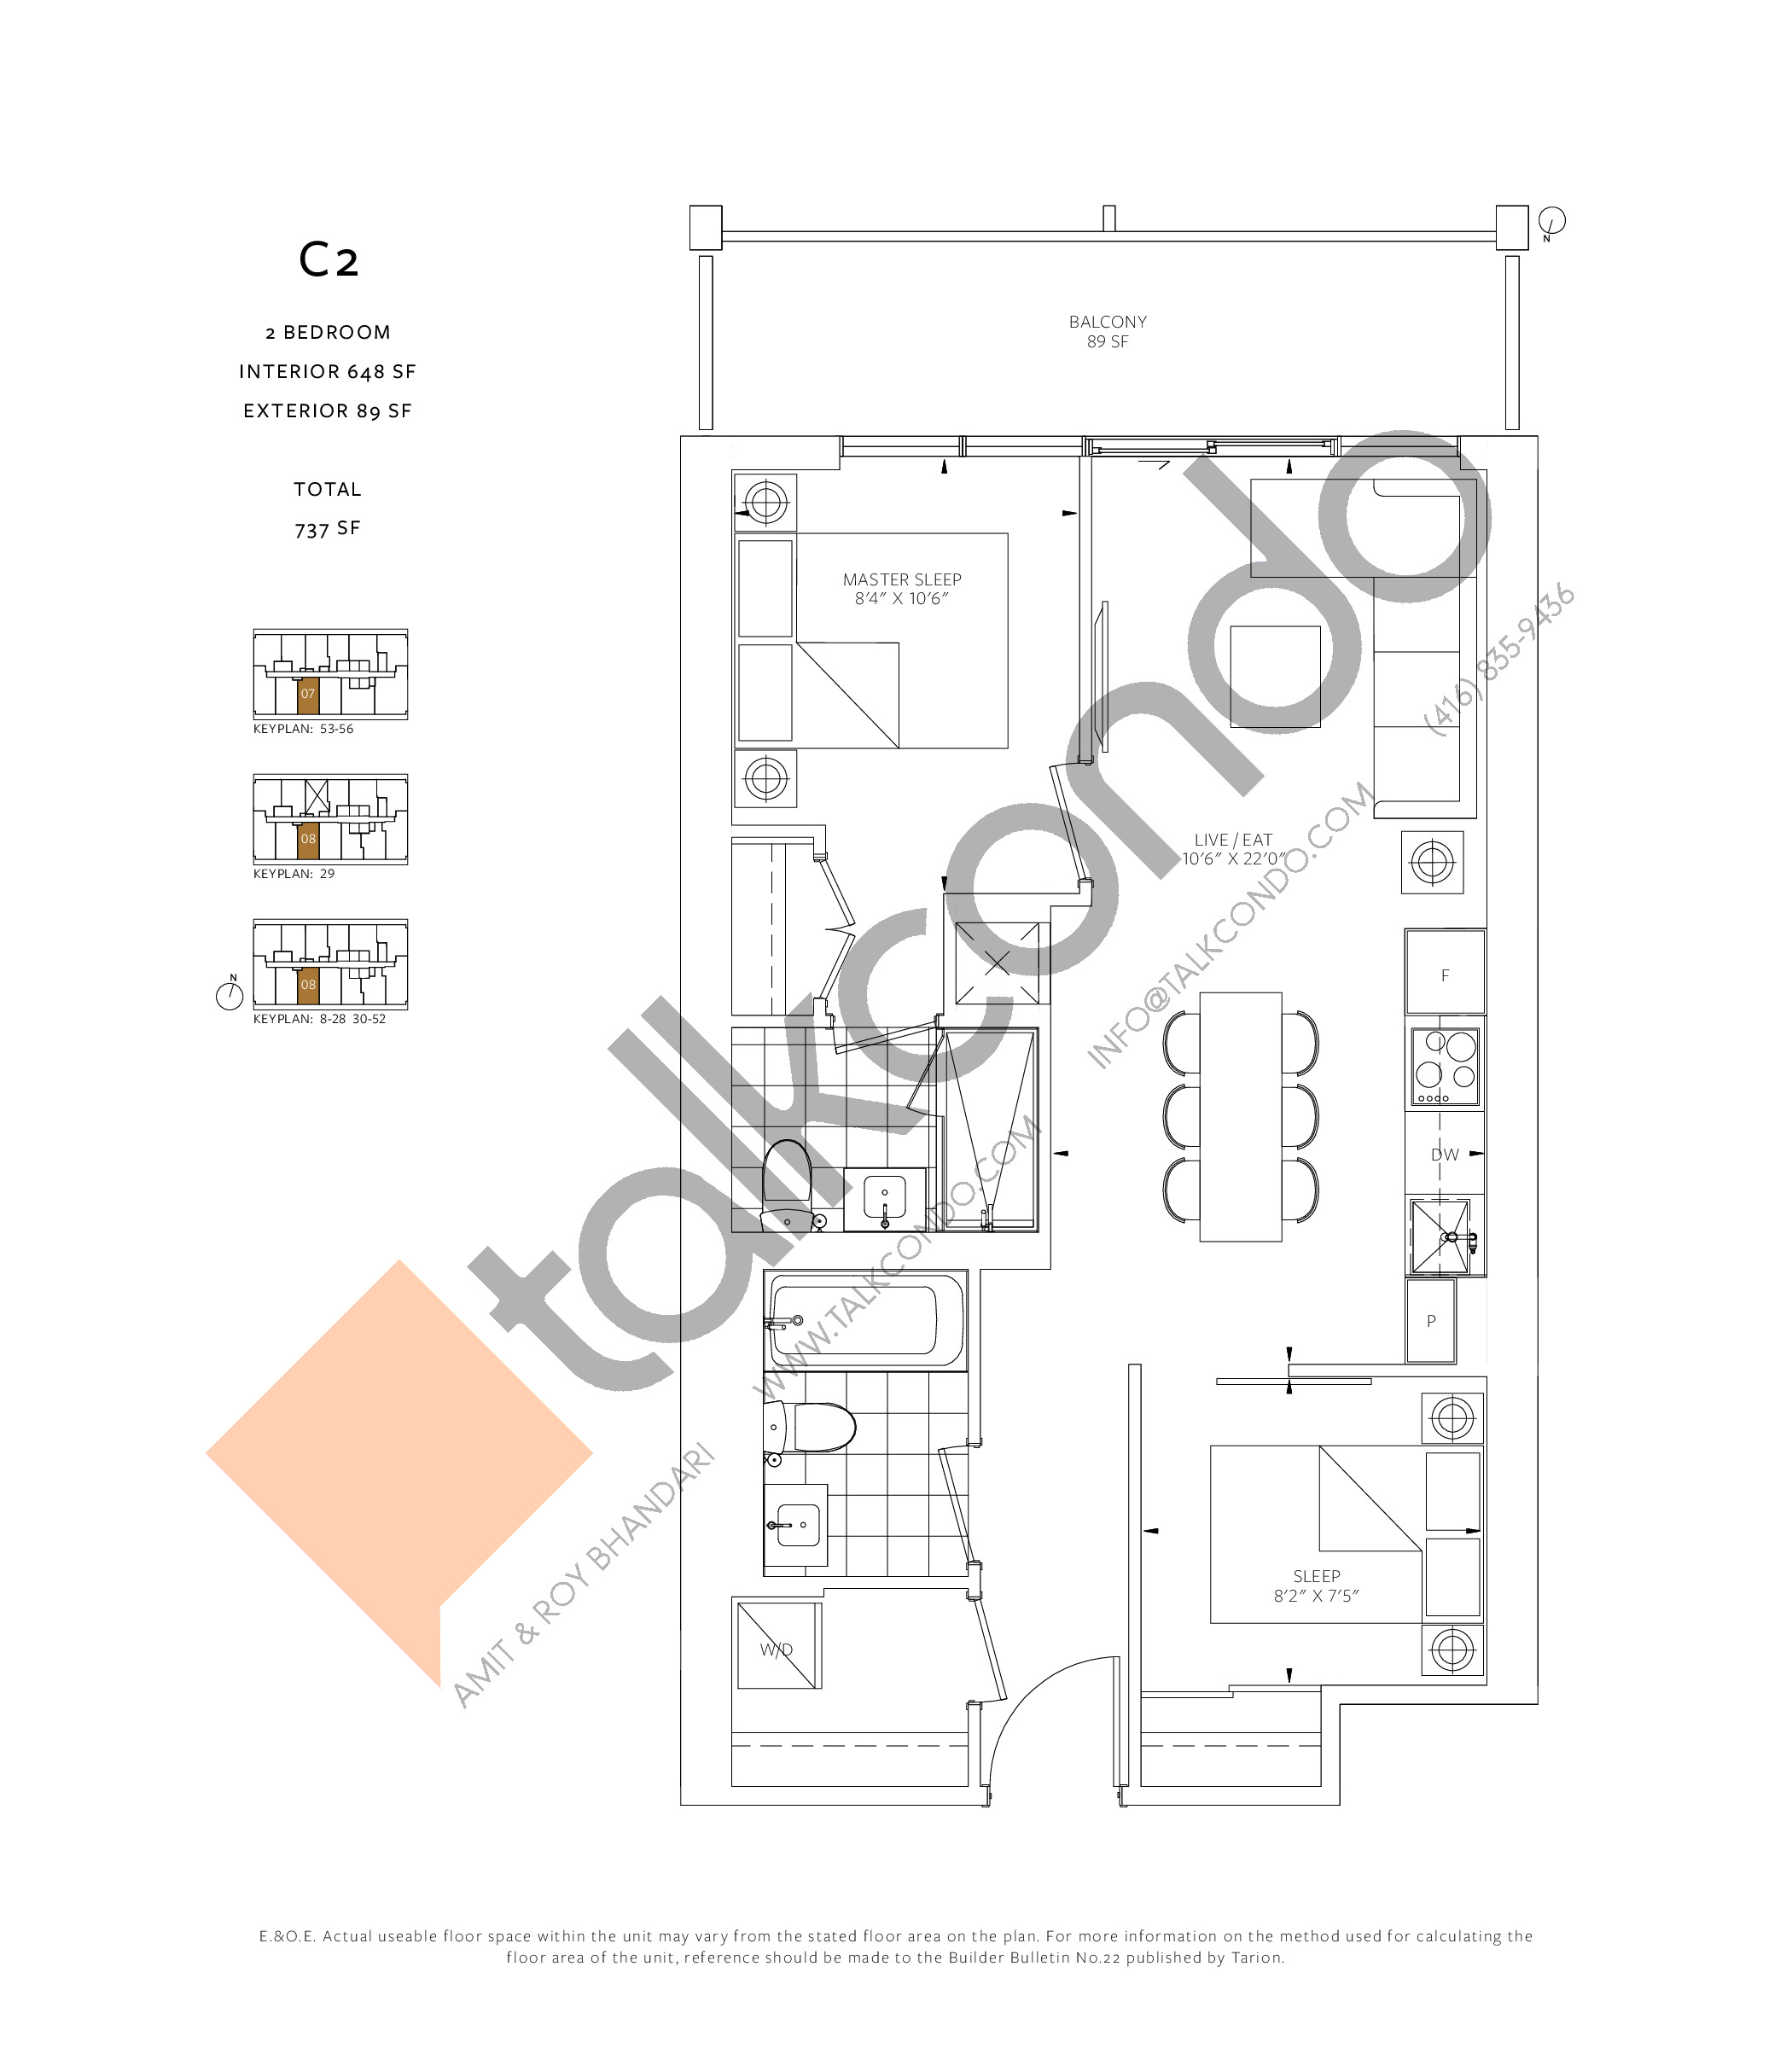 C2 Floor Plan at 88 Queen Condos - 648 sq.ft